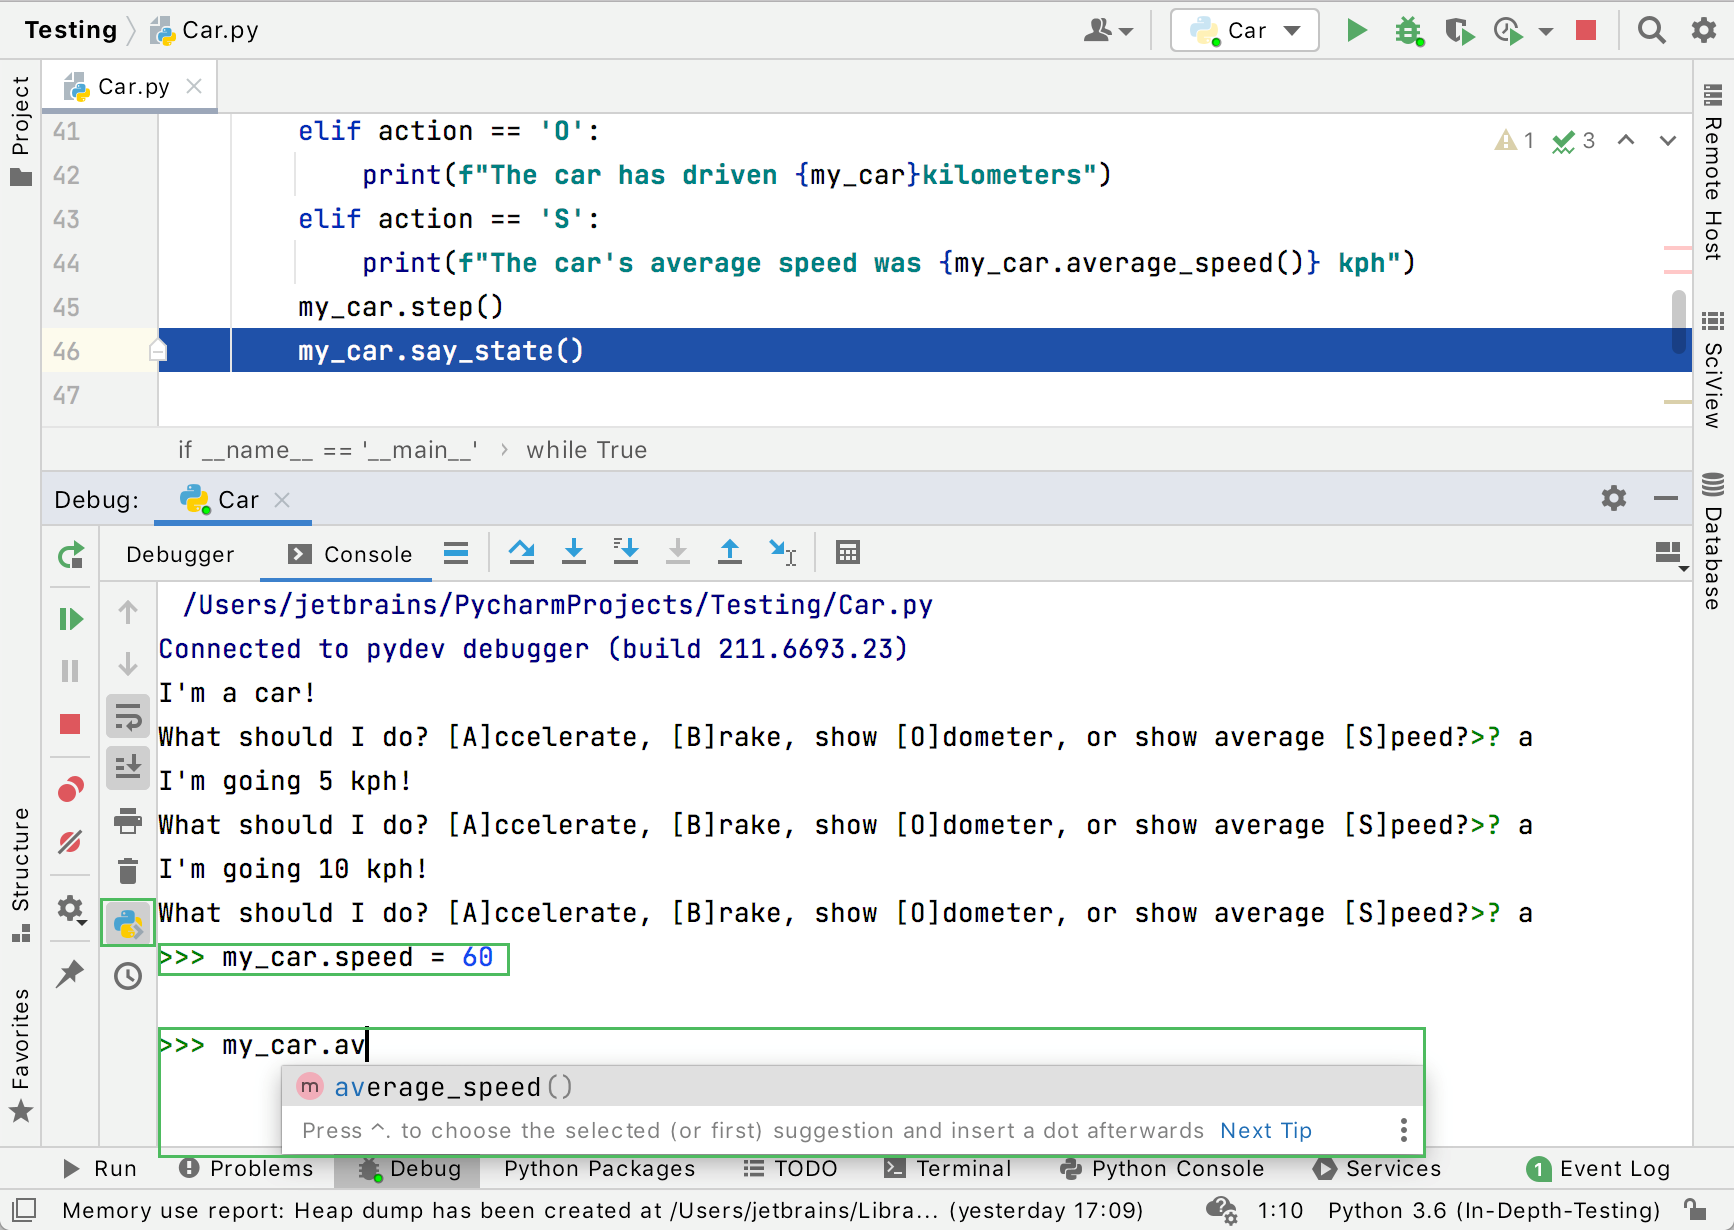 changing variables during debugging in the Python console